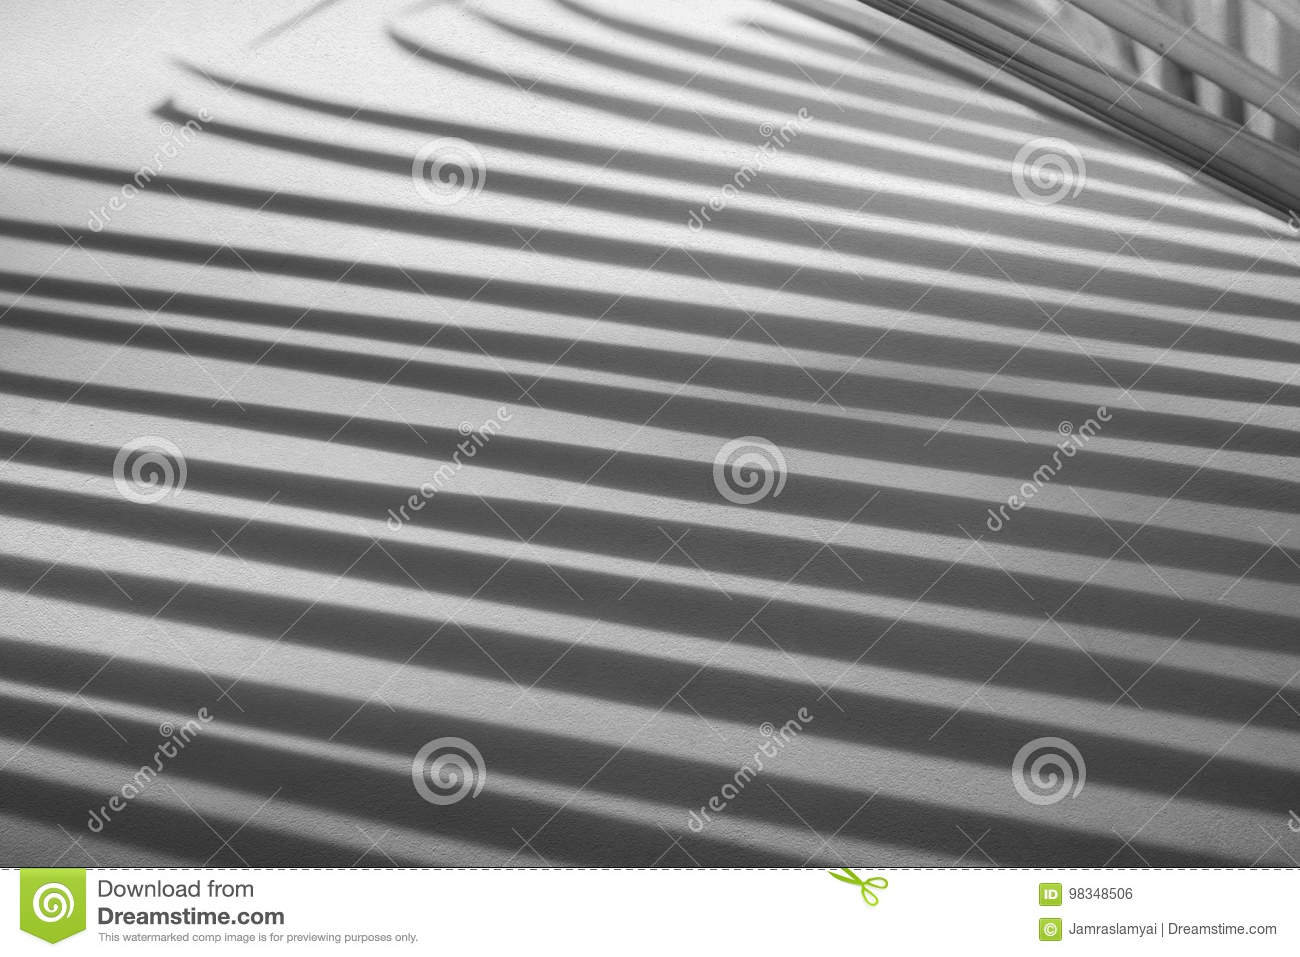 Abstract background of shadow palm leaves on concrete rough texture wall.